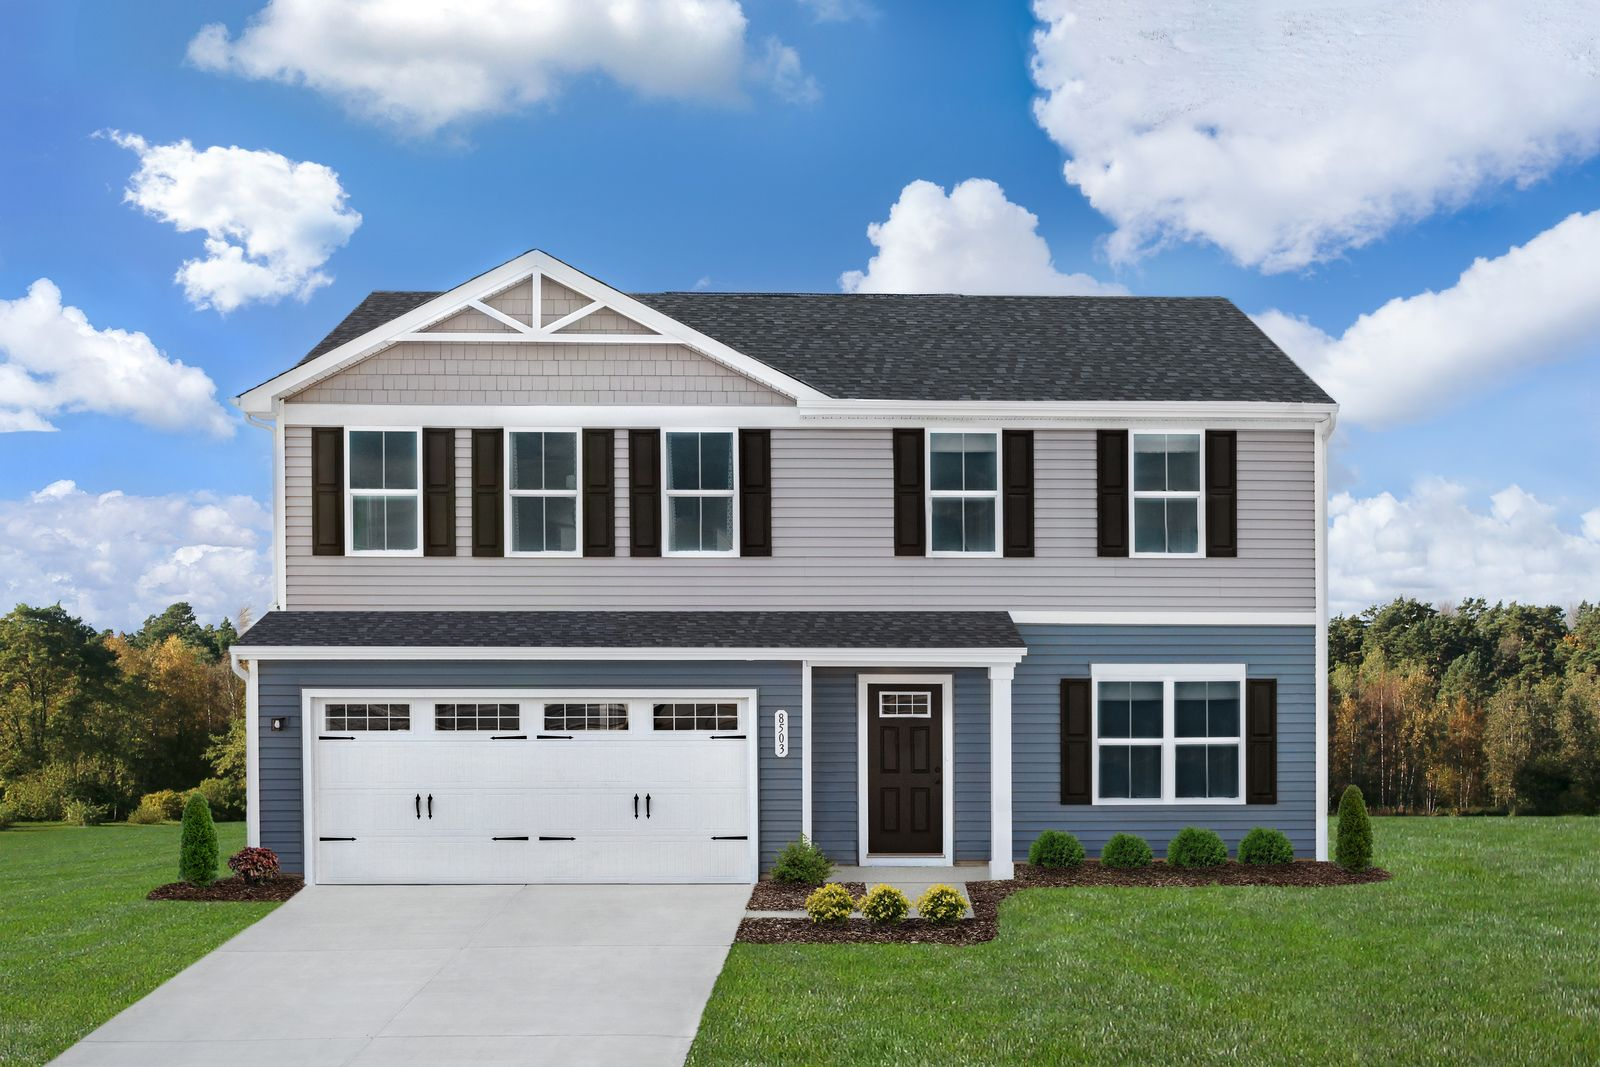 WELCOME HOME TO WEST BROOK ESTATES:Most affordable new homes in Stark County. Includes full landscaping, all appliances, no HOA fees, and low taxes! From the upper $100s.Click here to schedule your visit today!